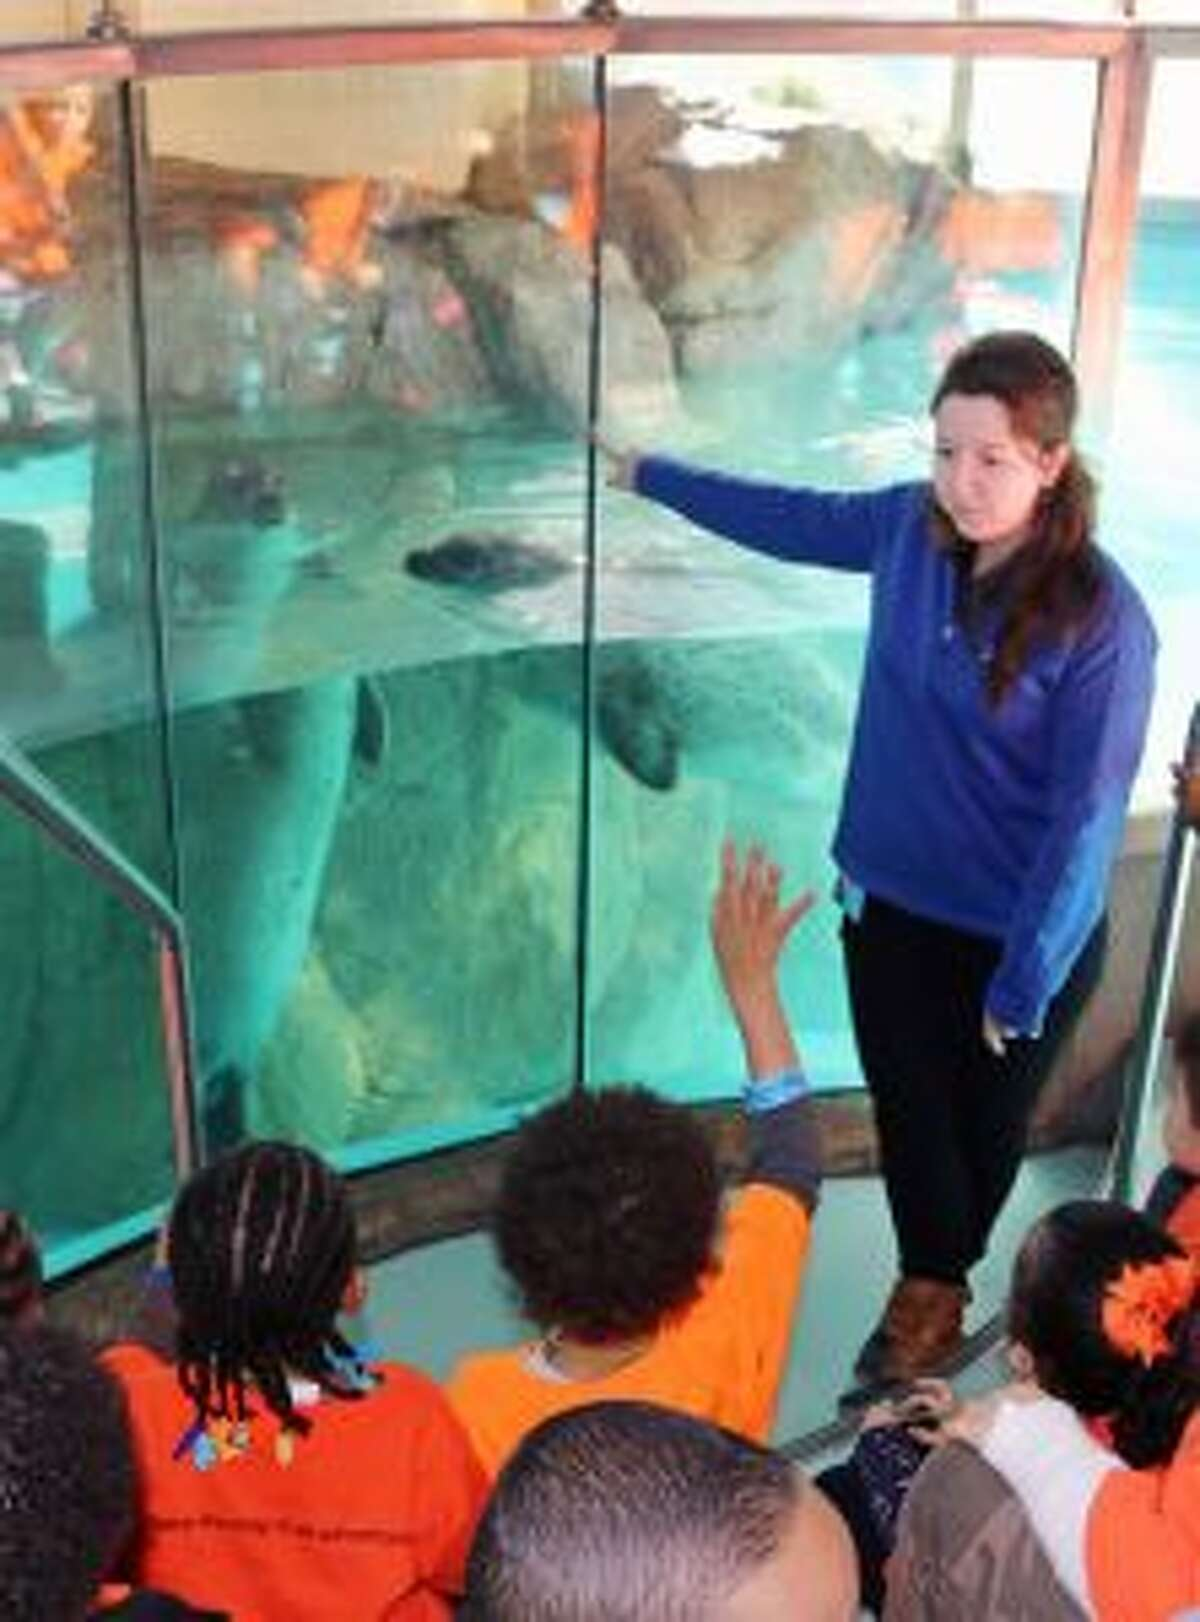 Maritime Aquarium educator Lauren Magliola directs observations about the harbor seals with young students during a school field trip.